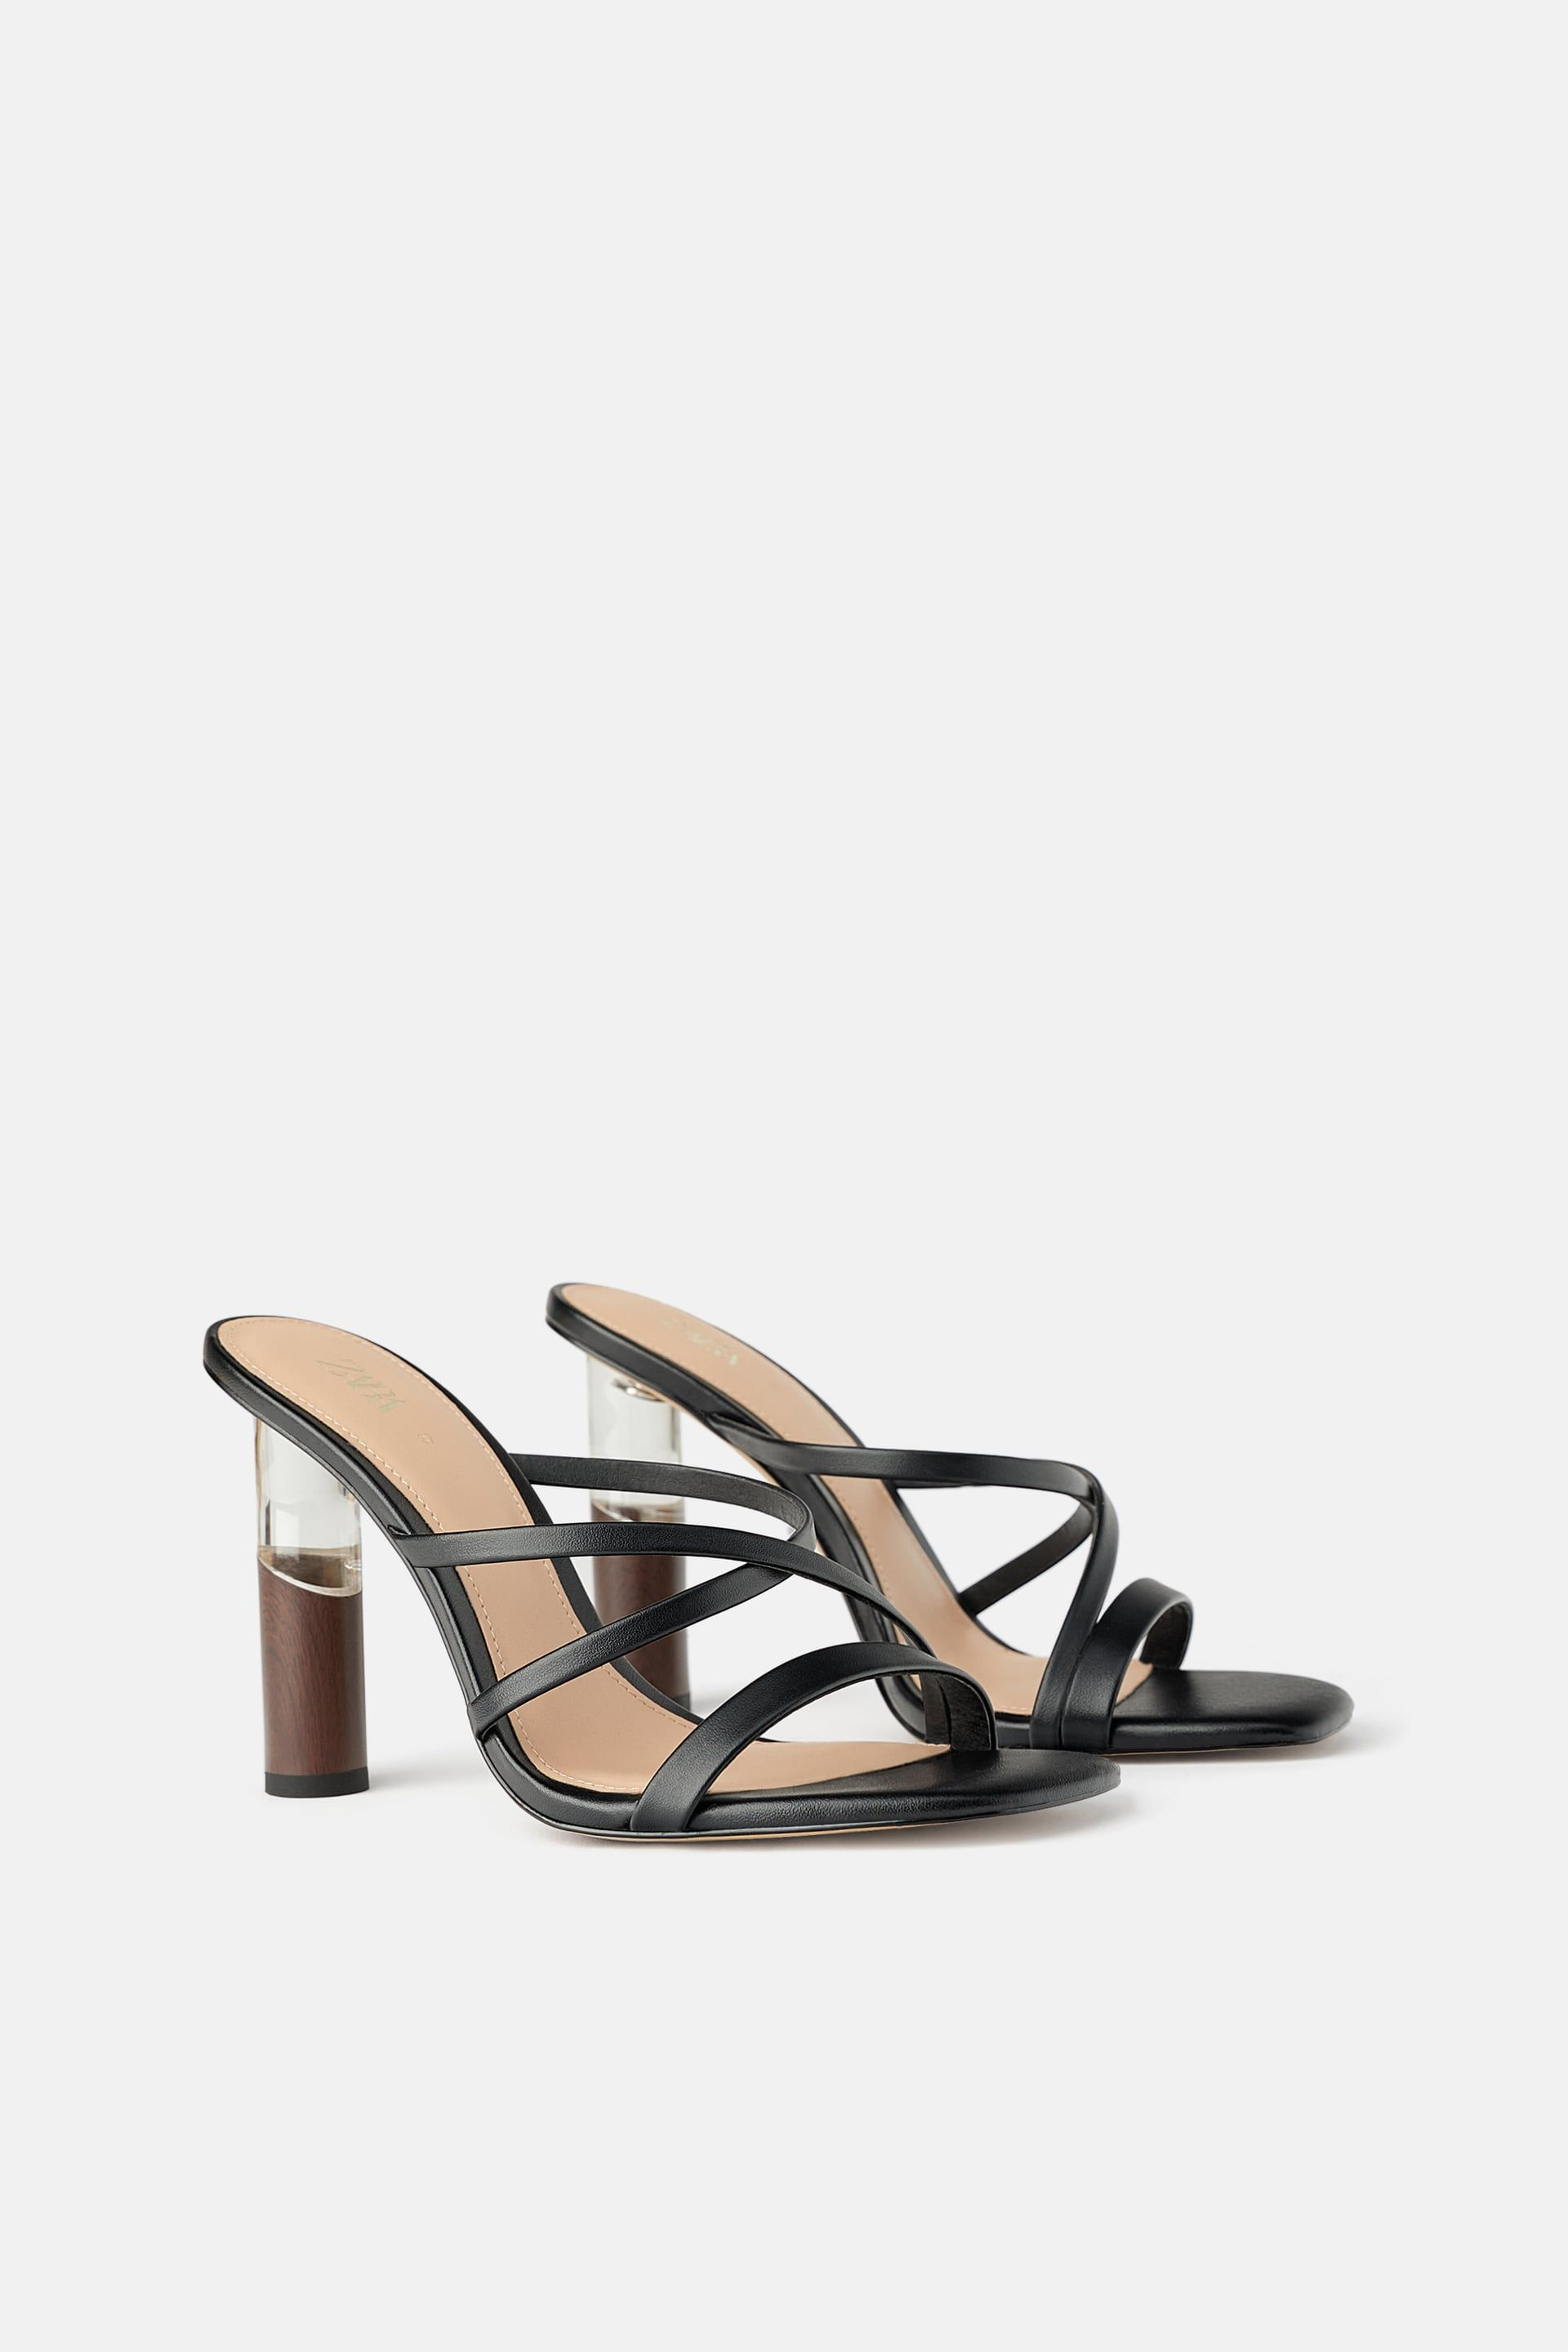 4713446e634f8 SANDALS WITH CONTRAST ROUND HEEL - NEW IN-WOMAN | ZARA Malaysia ...